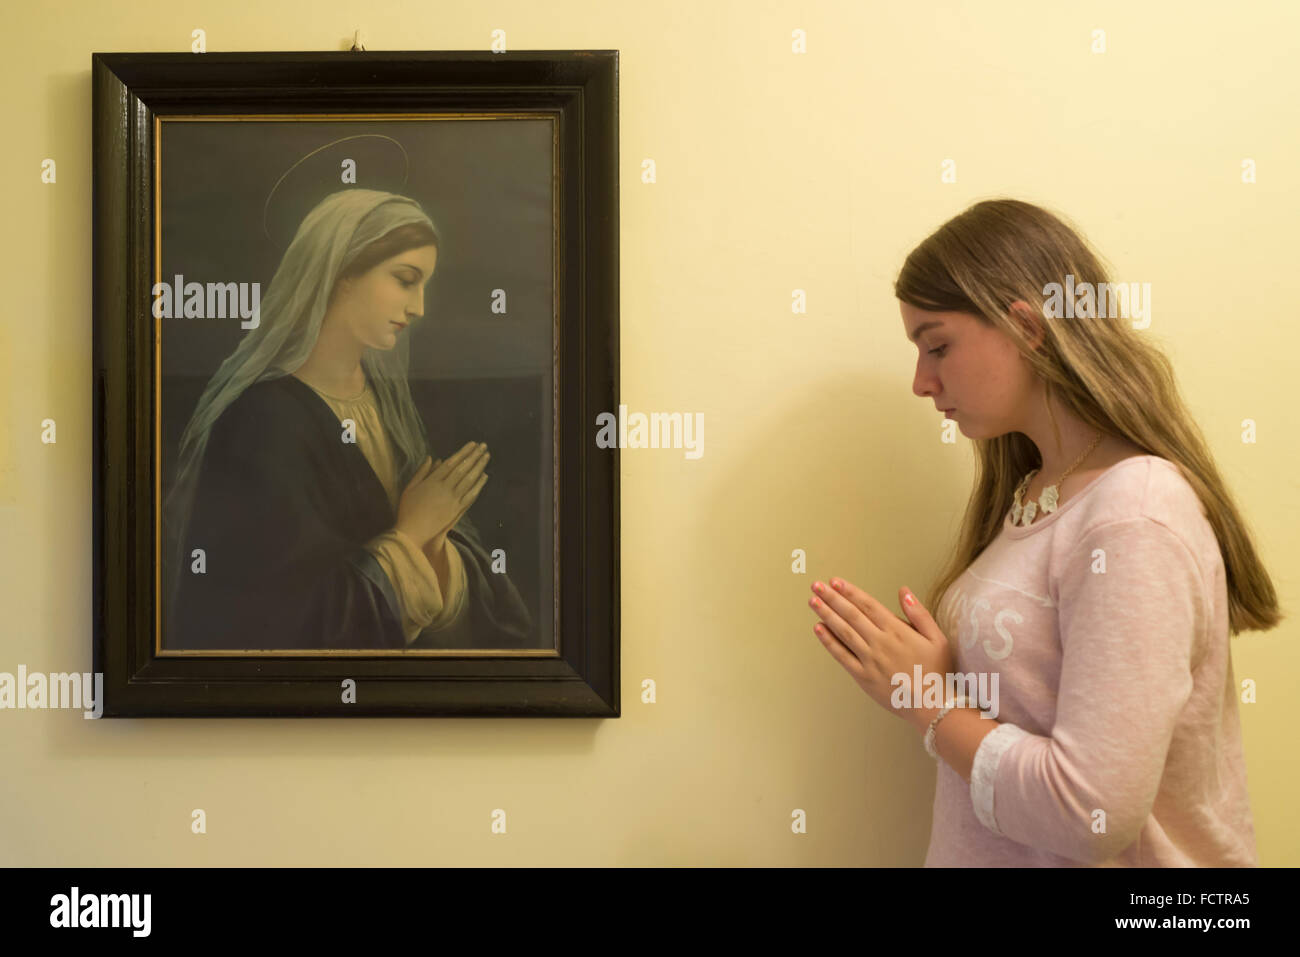 Young woman praying like the portrait of the Blessed Virgin Mary ...